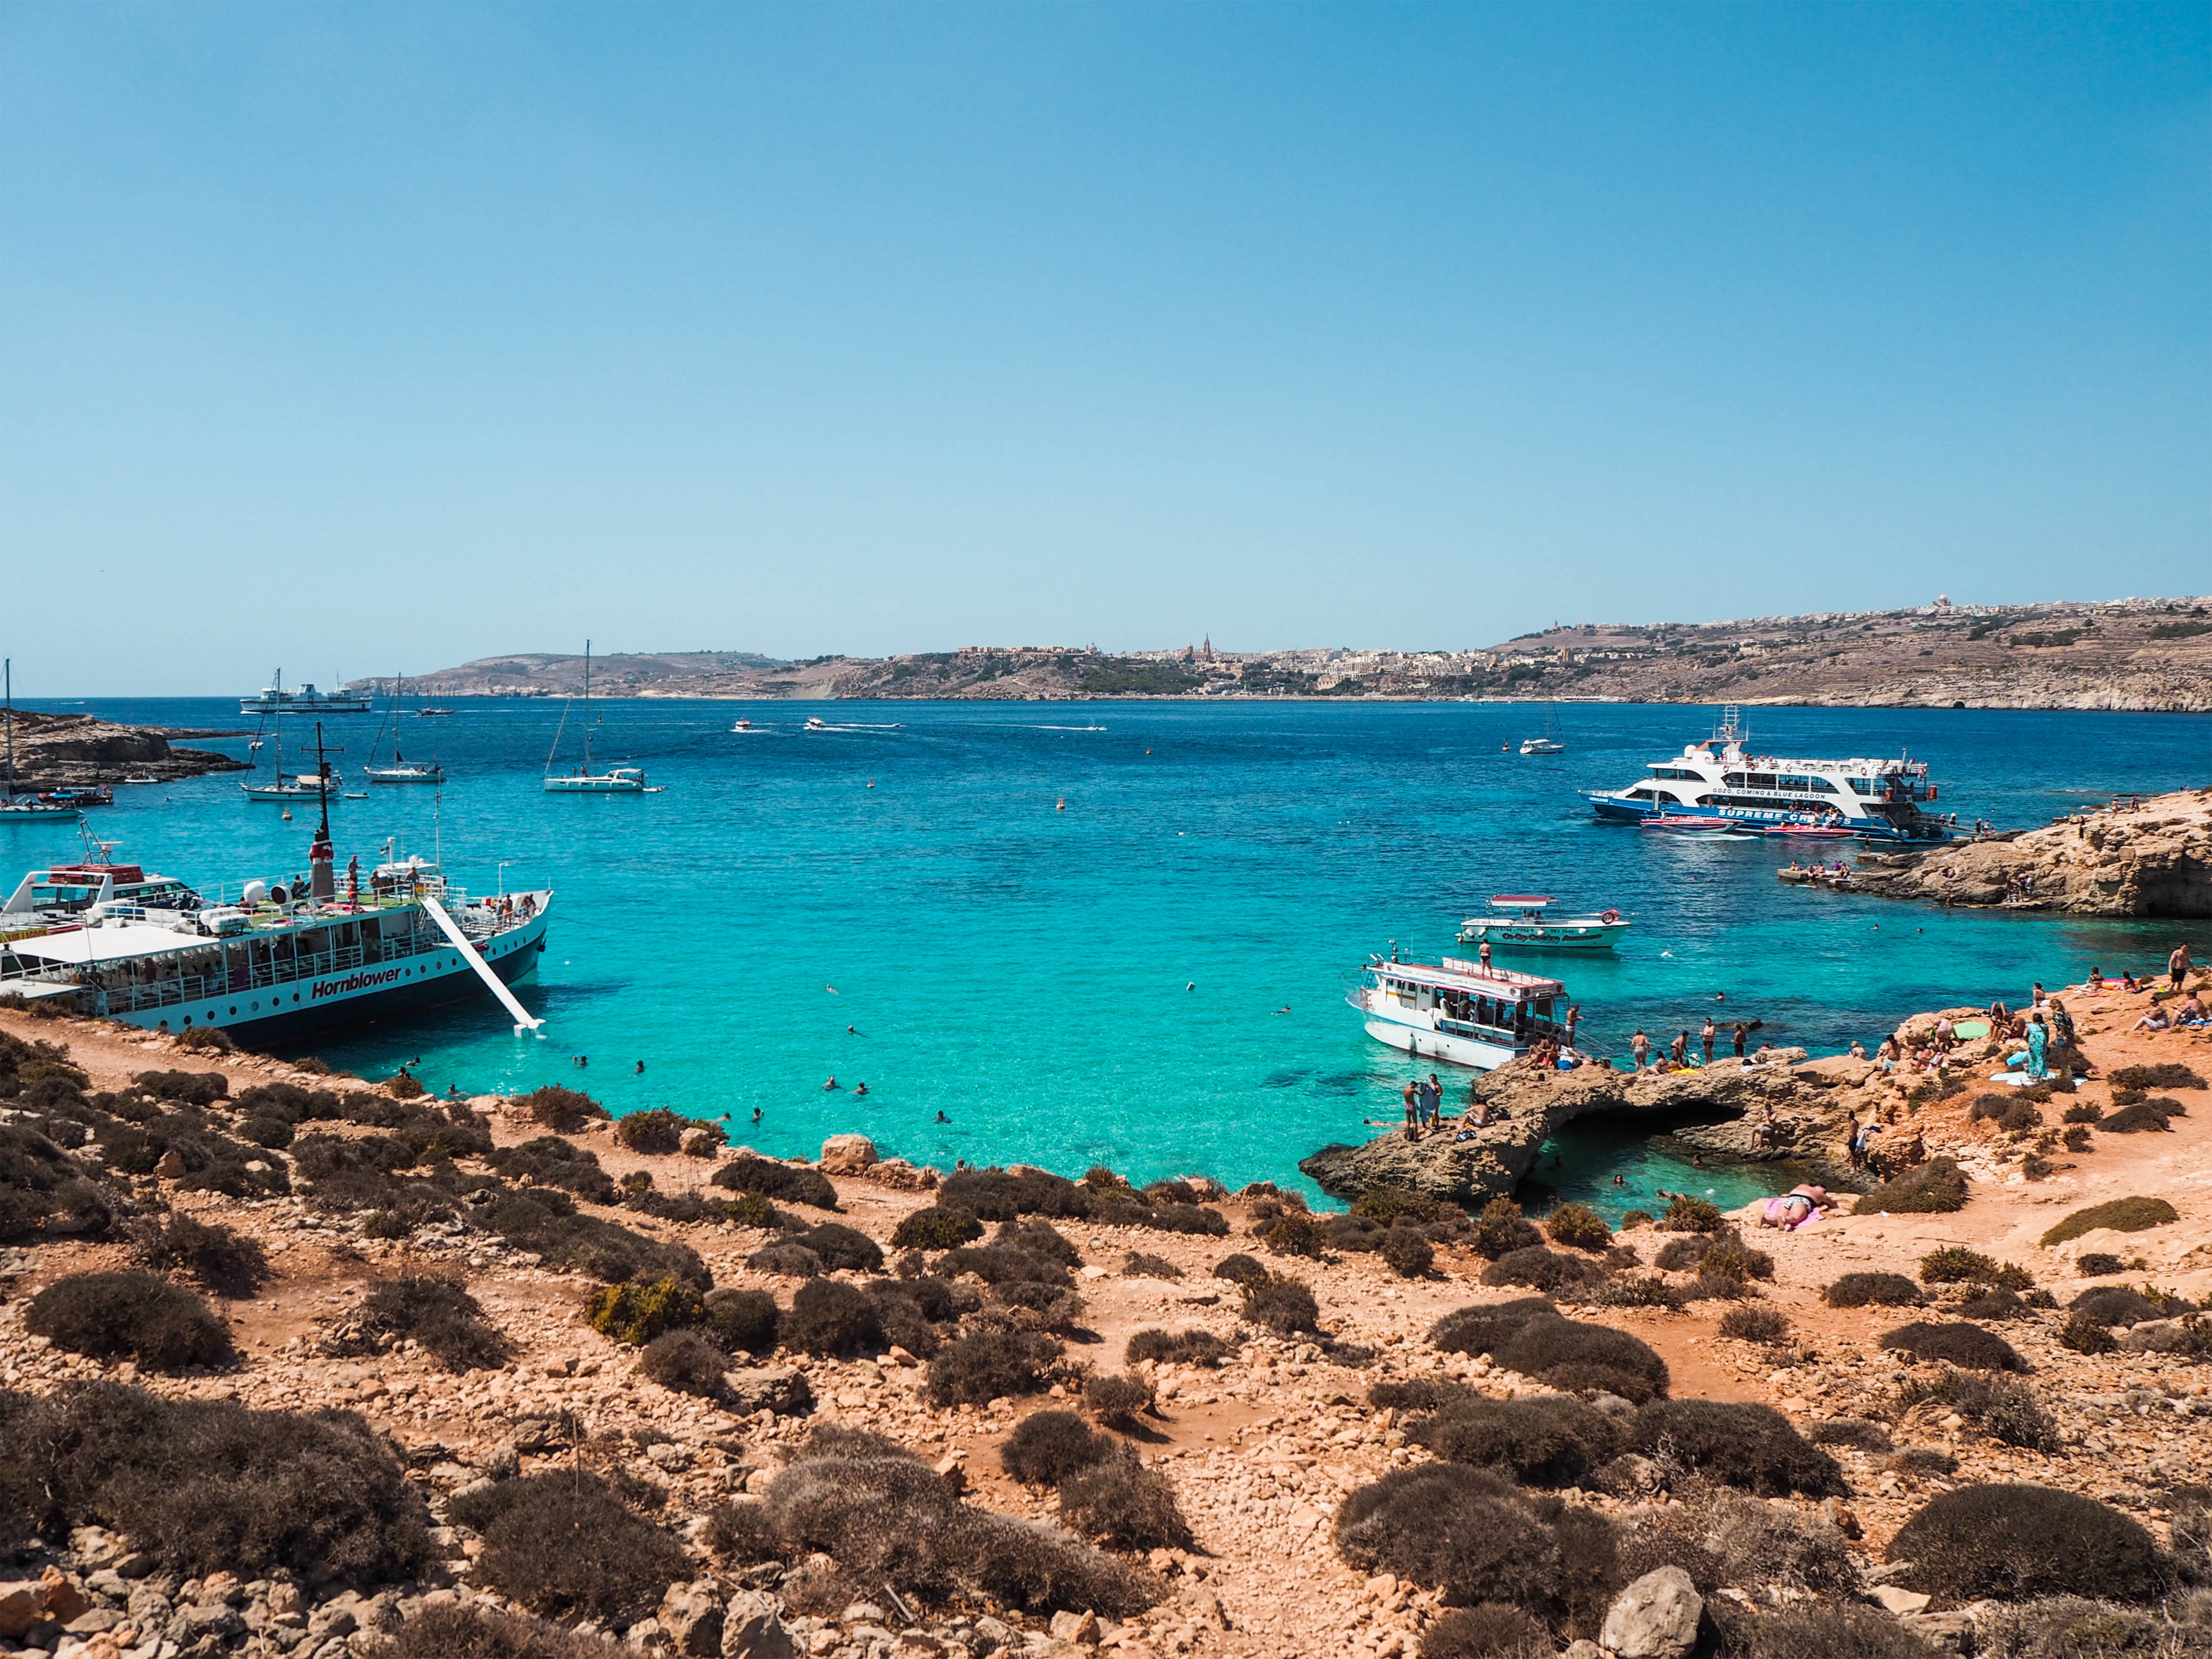 The Blue Lagoon, Comino, Malta